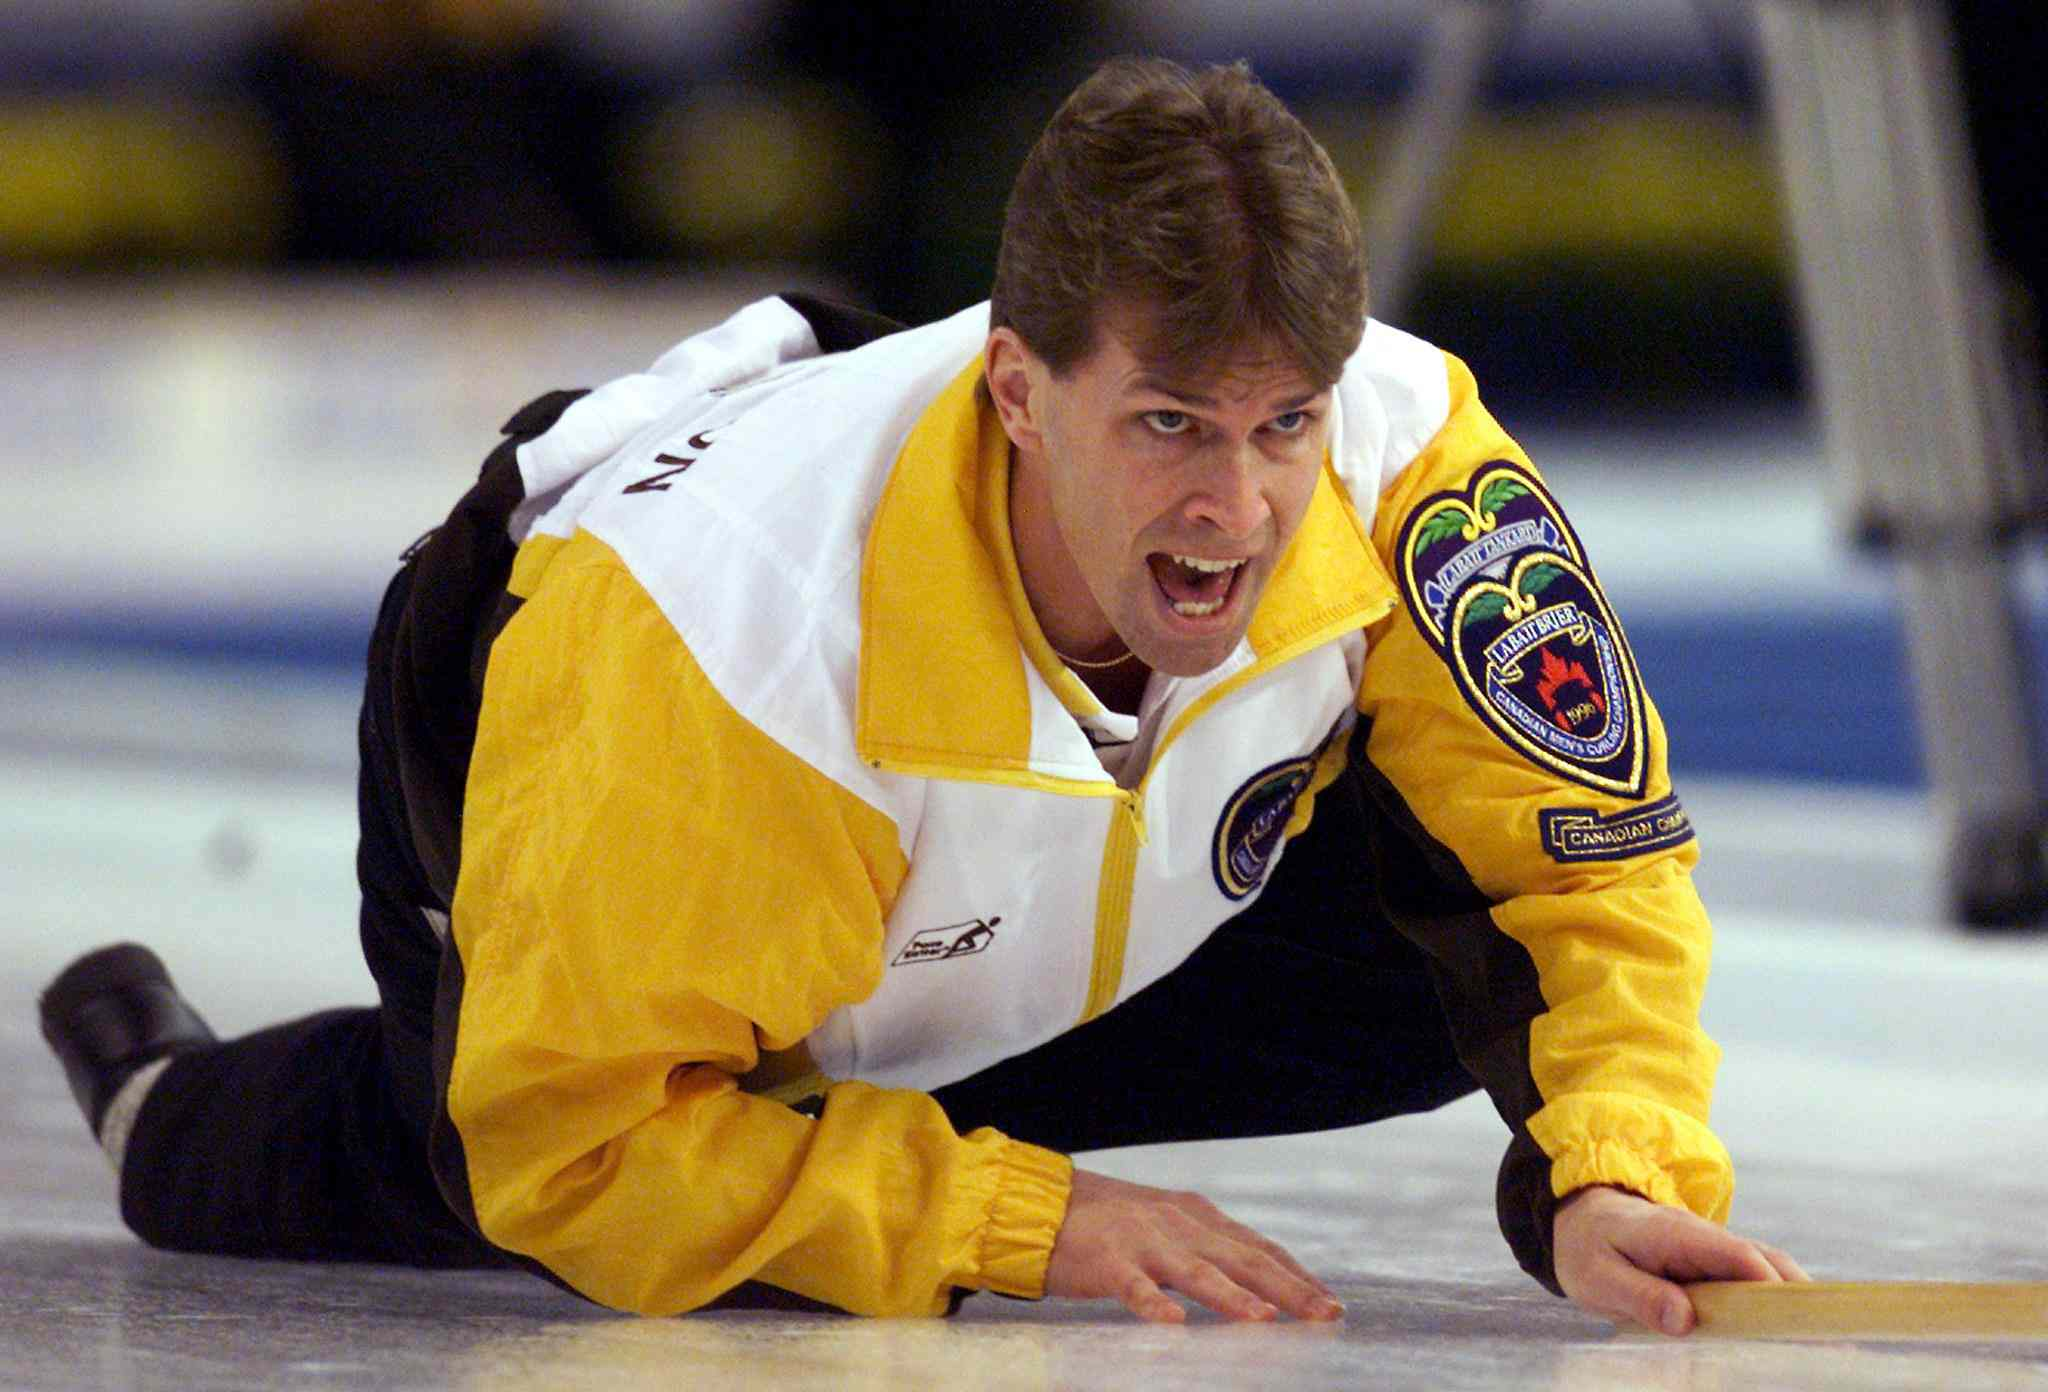 Stoughton yells for his team to sweep during the Brier final against Quebec in 1999.